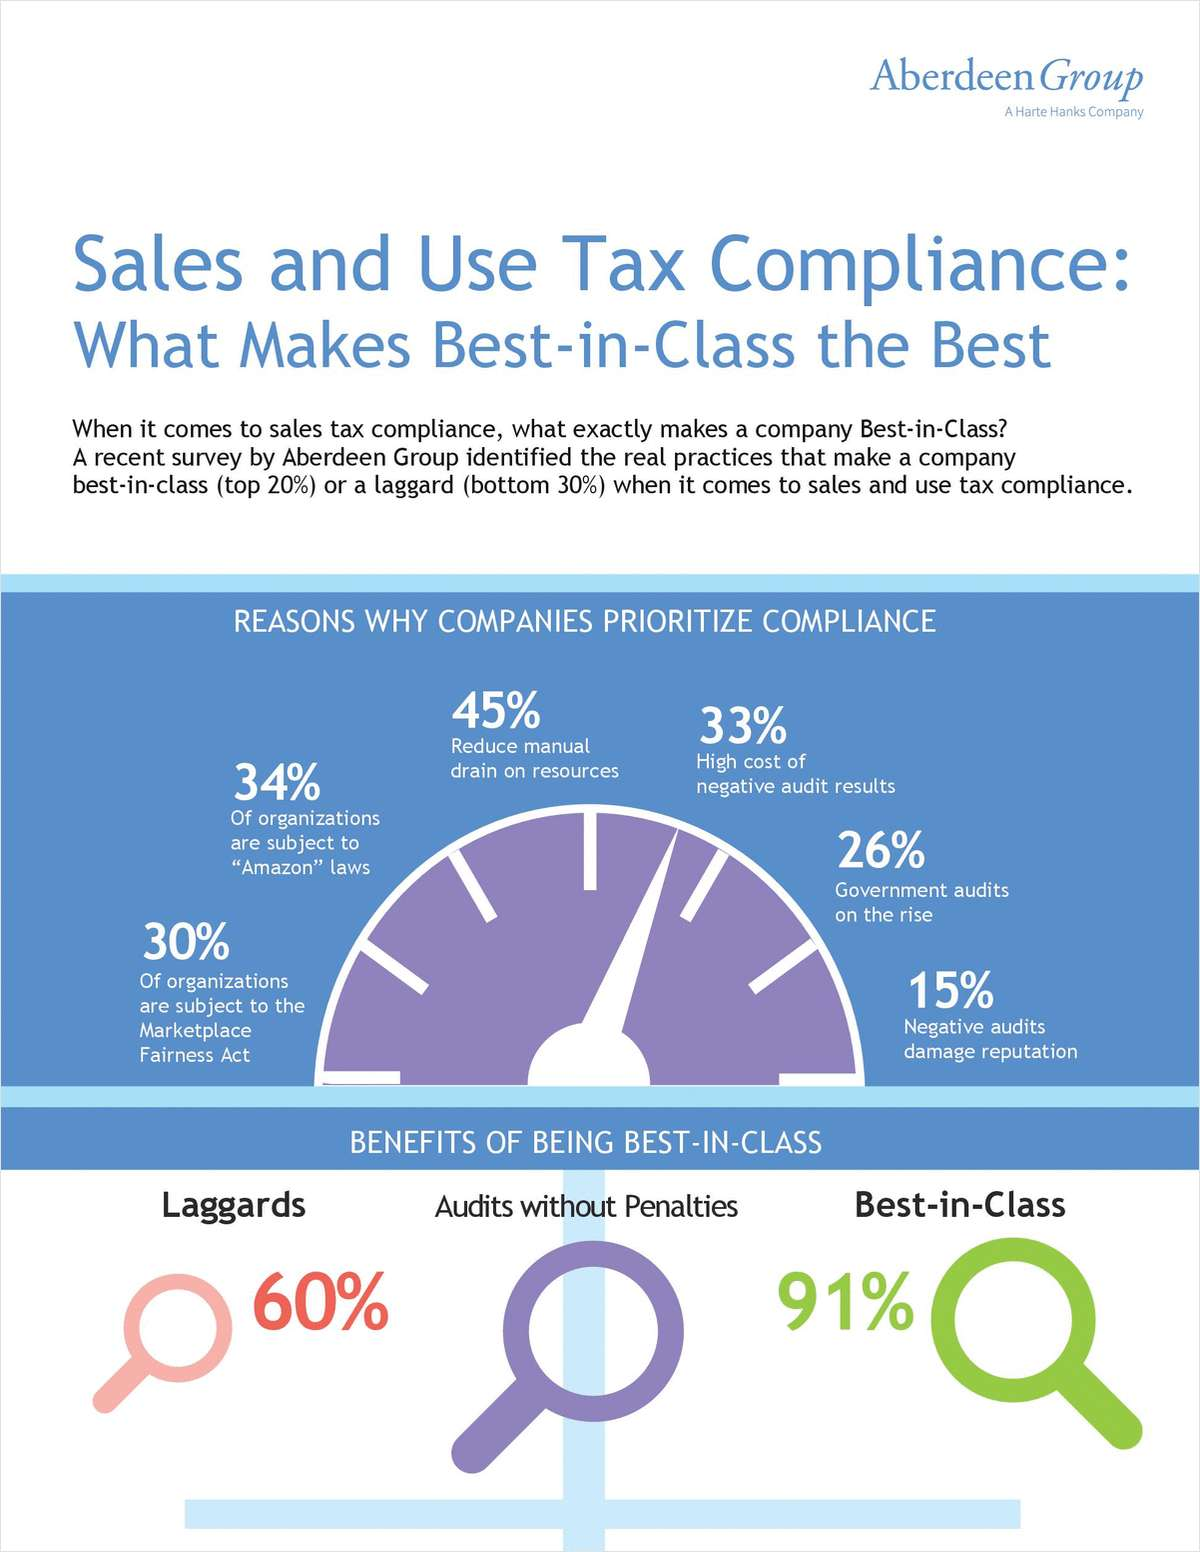 Sales and Use Tax Compliance: What Makes Best-in-Class the Best